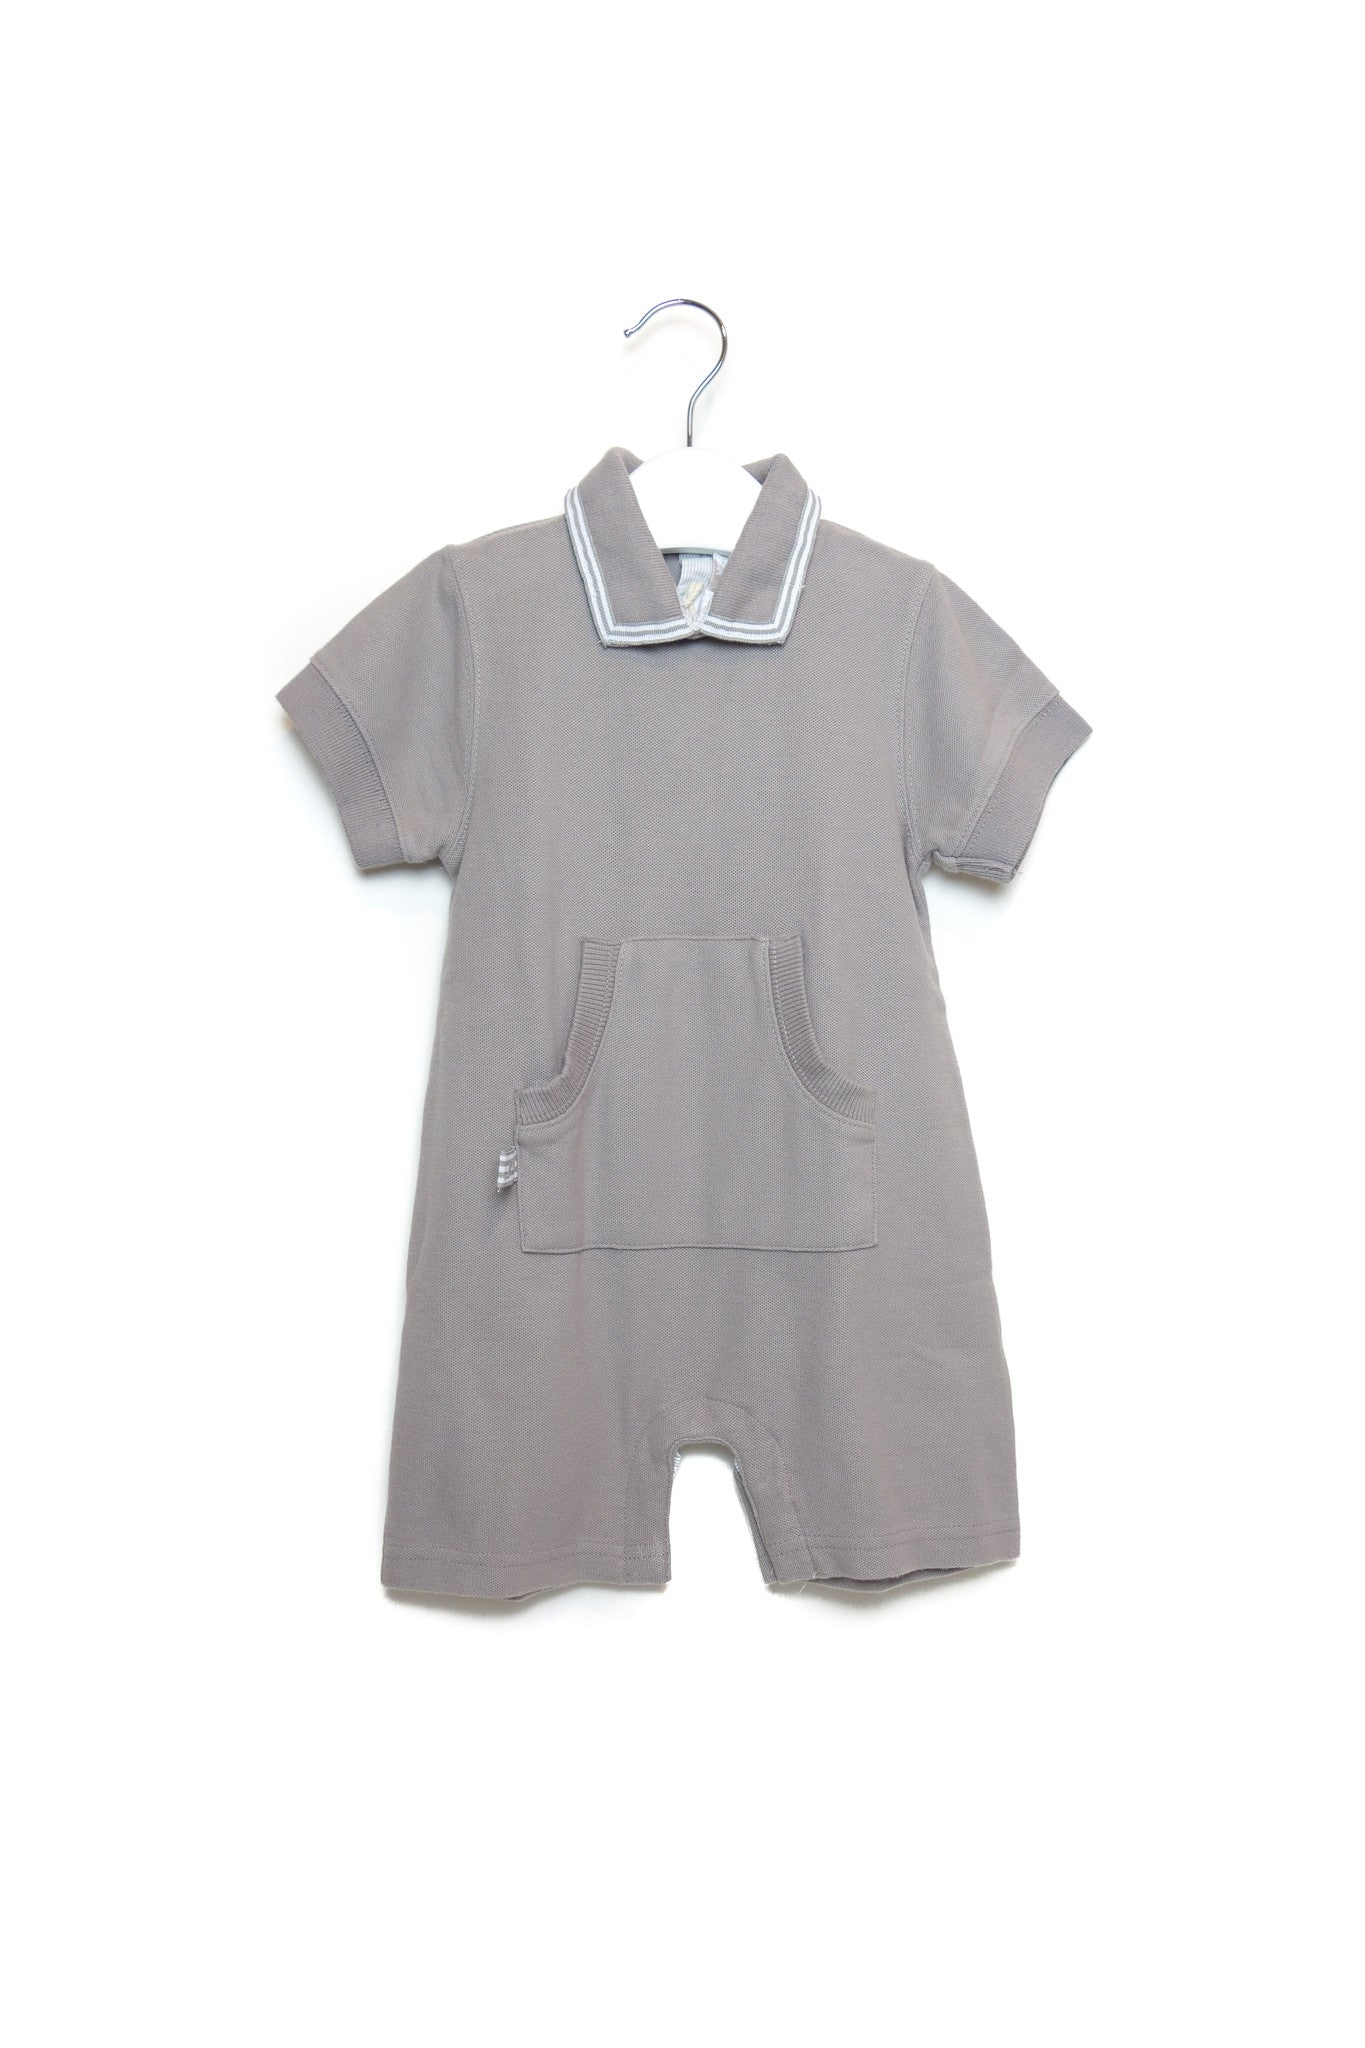 10001543~Jumpsuit 12M, Chateau de Sable at Retykle - Online Baby & Kids Clothing Up to 90% Off